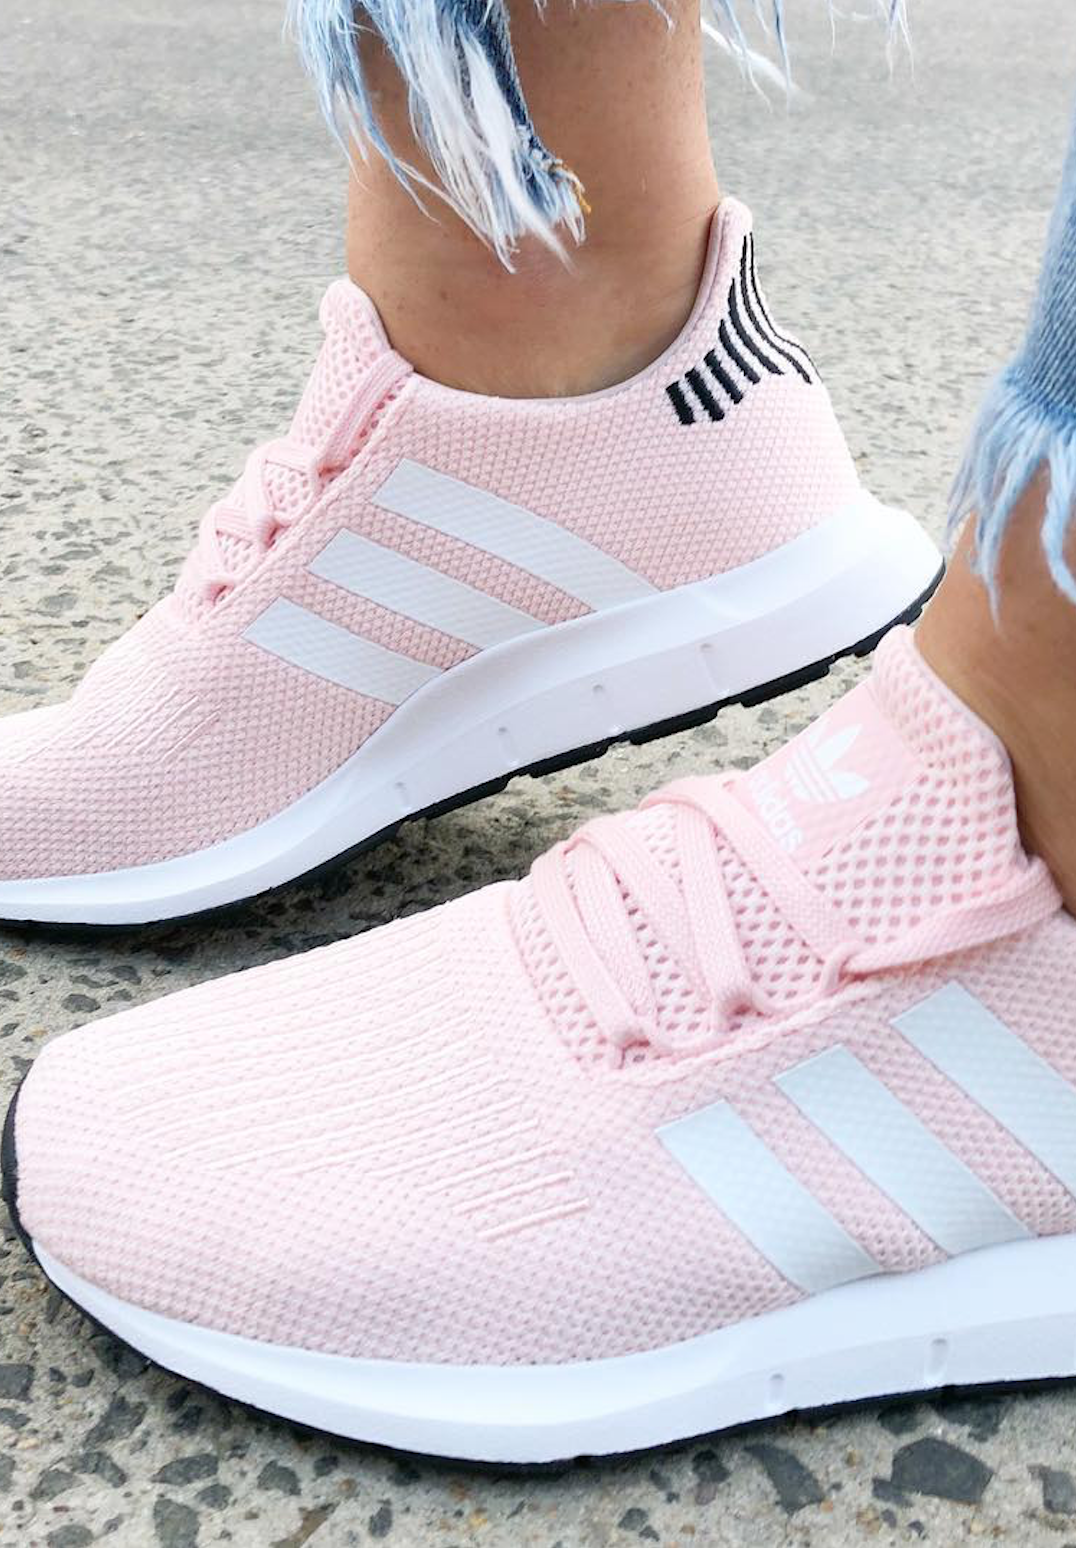 sale retailer d3cba 136f6 adidas Swift Run Sneakers in Icy Pink. Seriously stylish shoes 2018.